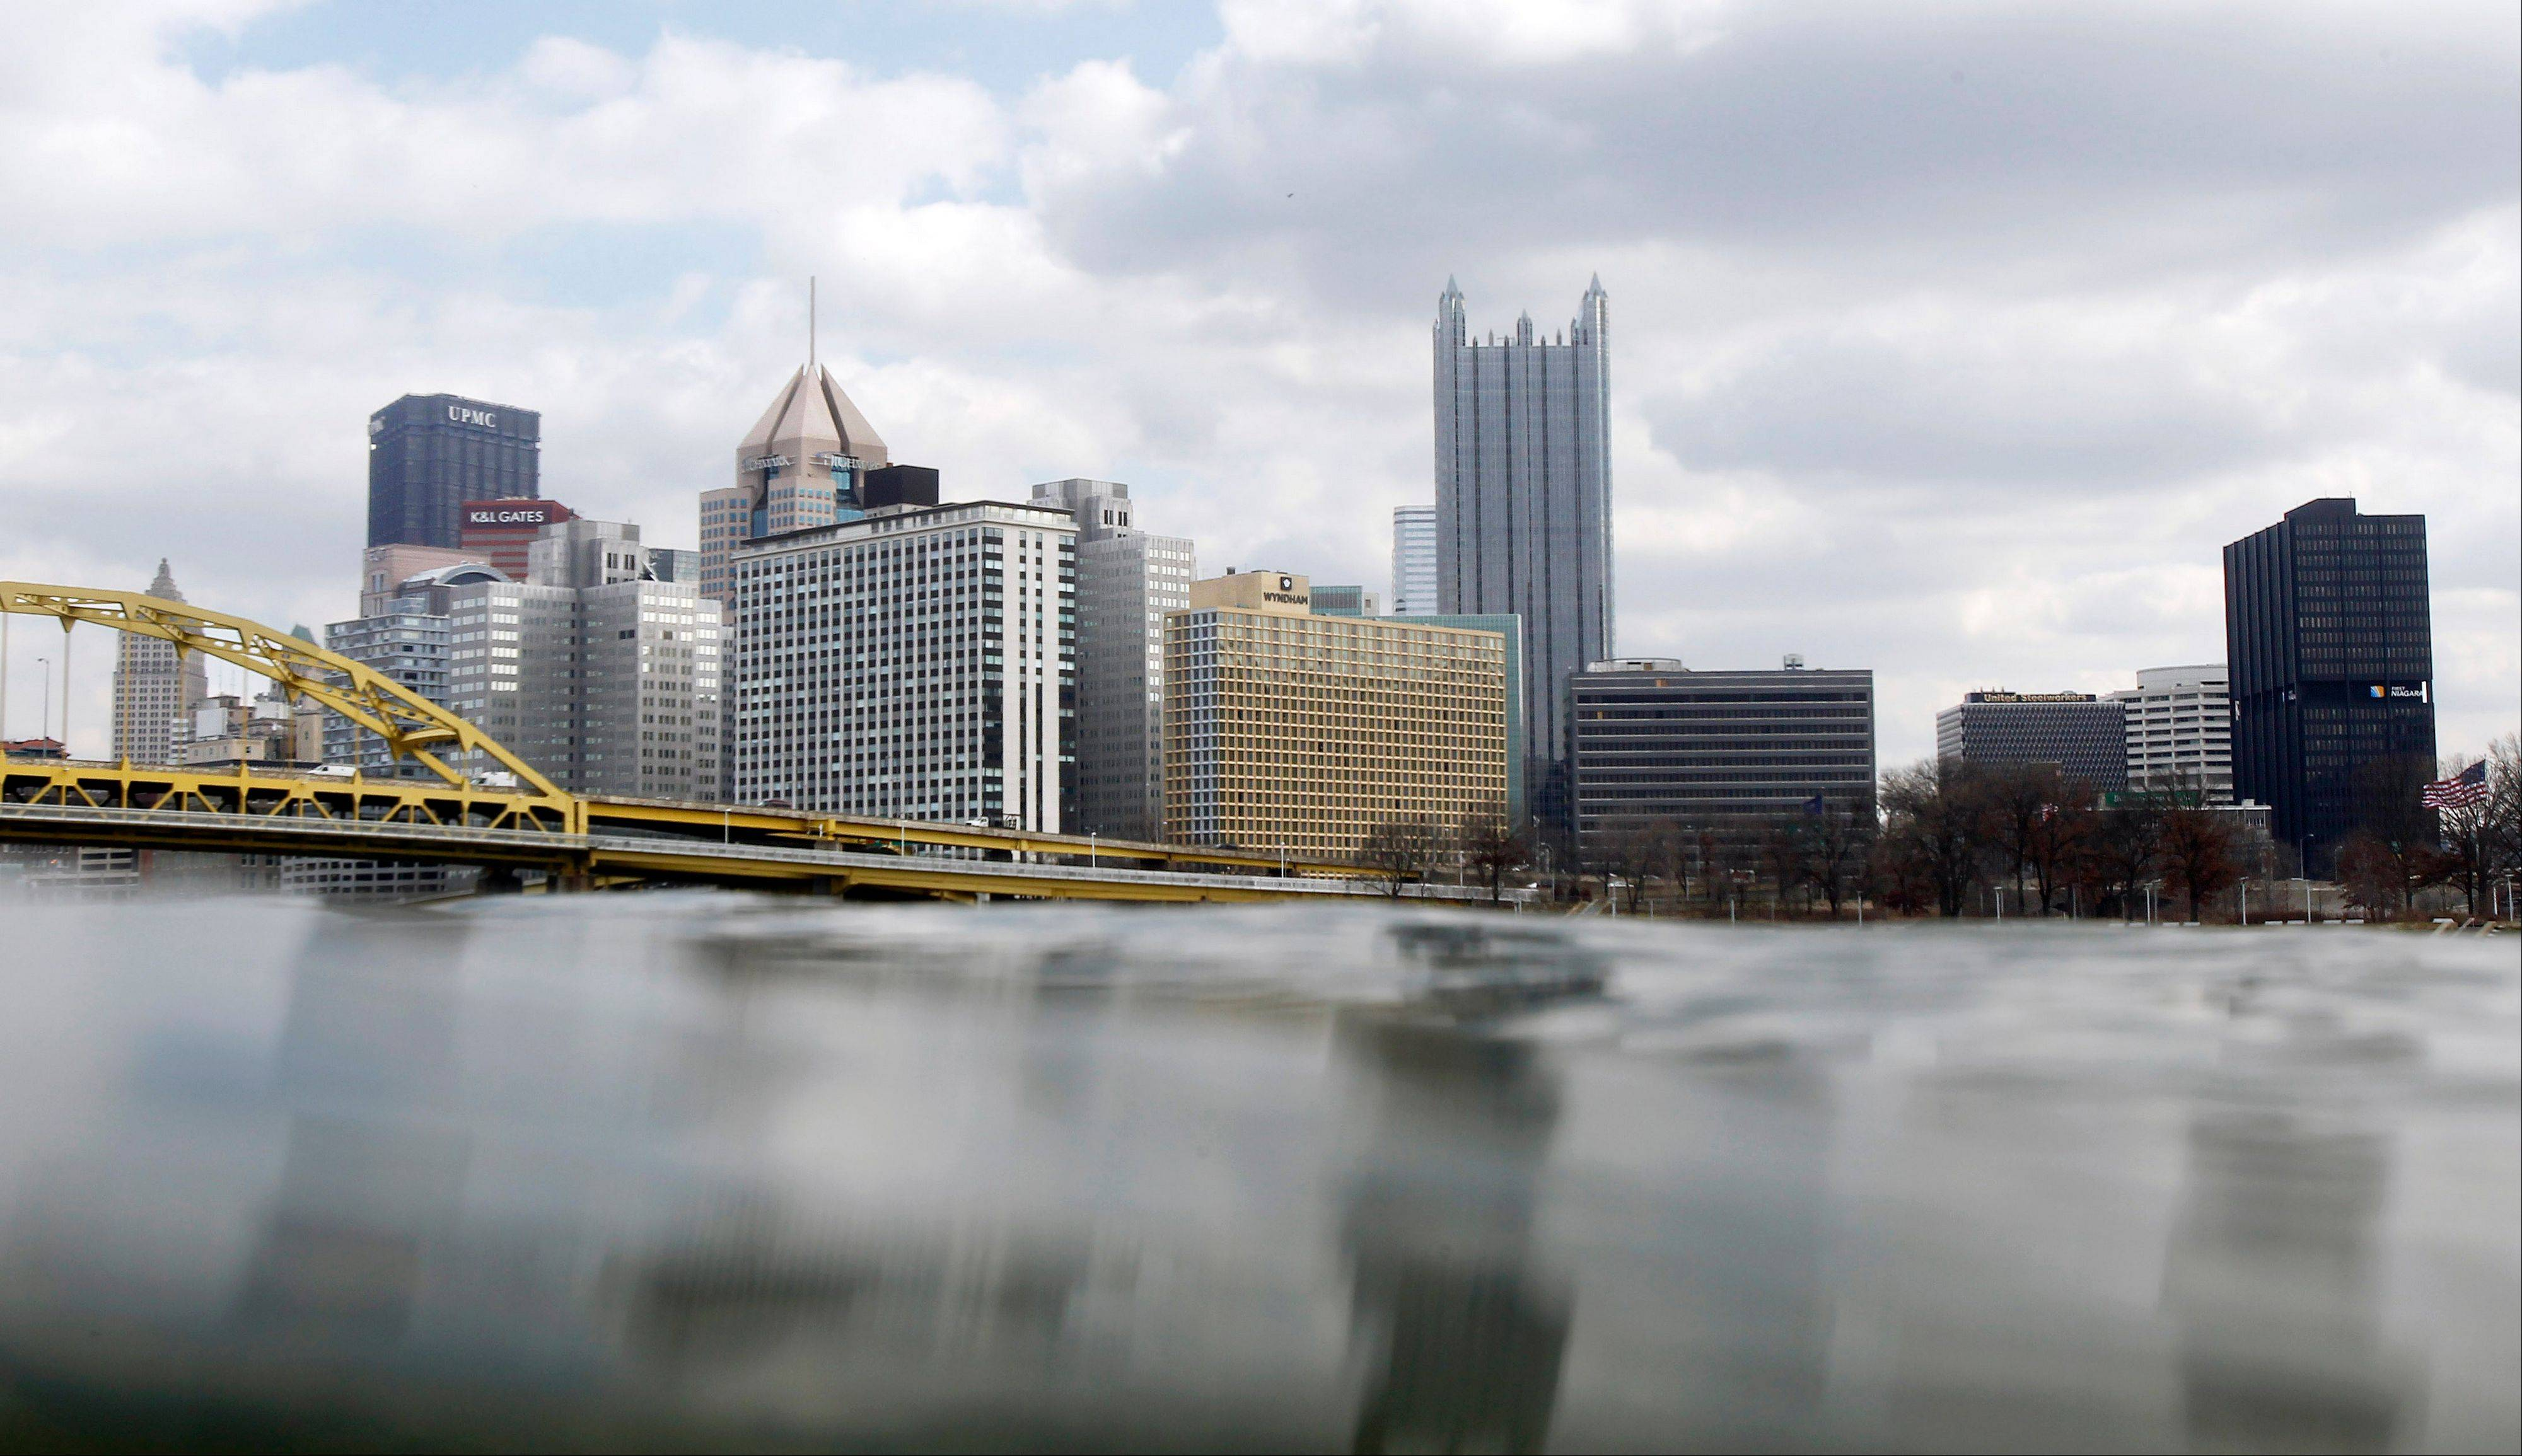 The Pittsburgh skyline rises above the waters of the Ohio River, which starts at the confluence of the Monongahela and Allegheny Rivers. The U.S. Coast Guard wants to allow barges filled with fracking wastewater to ply the nation's rivers on their way toward disposal, an idea that's raising alarm among environmentalists but could also provide long-elusive information on what exactly the toxic brews contain.